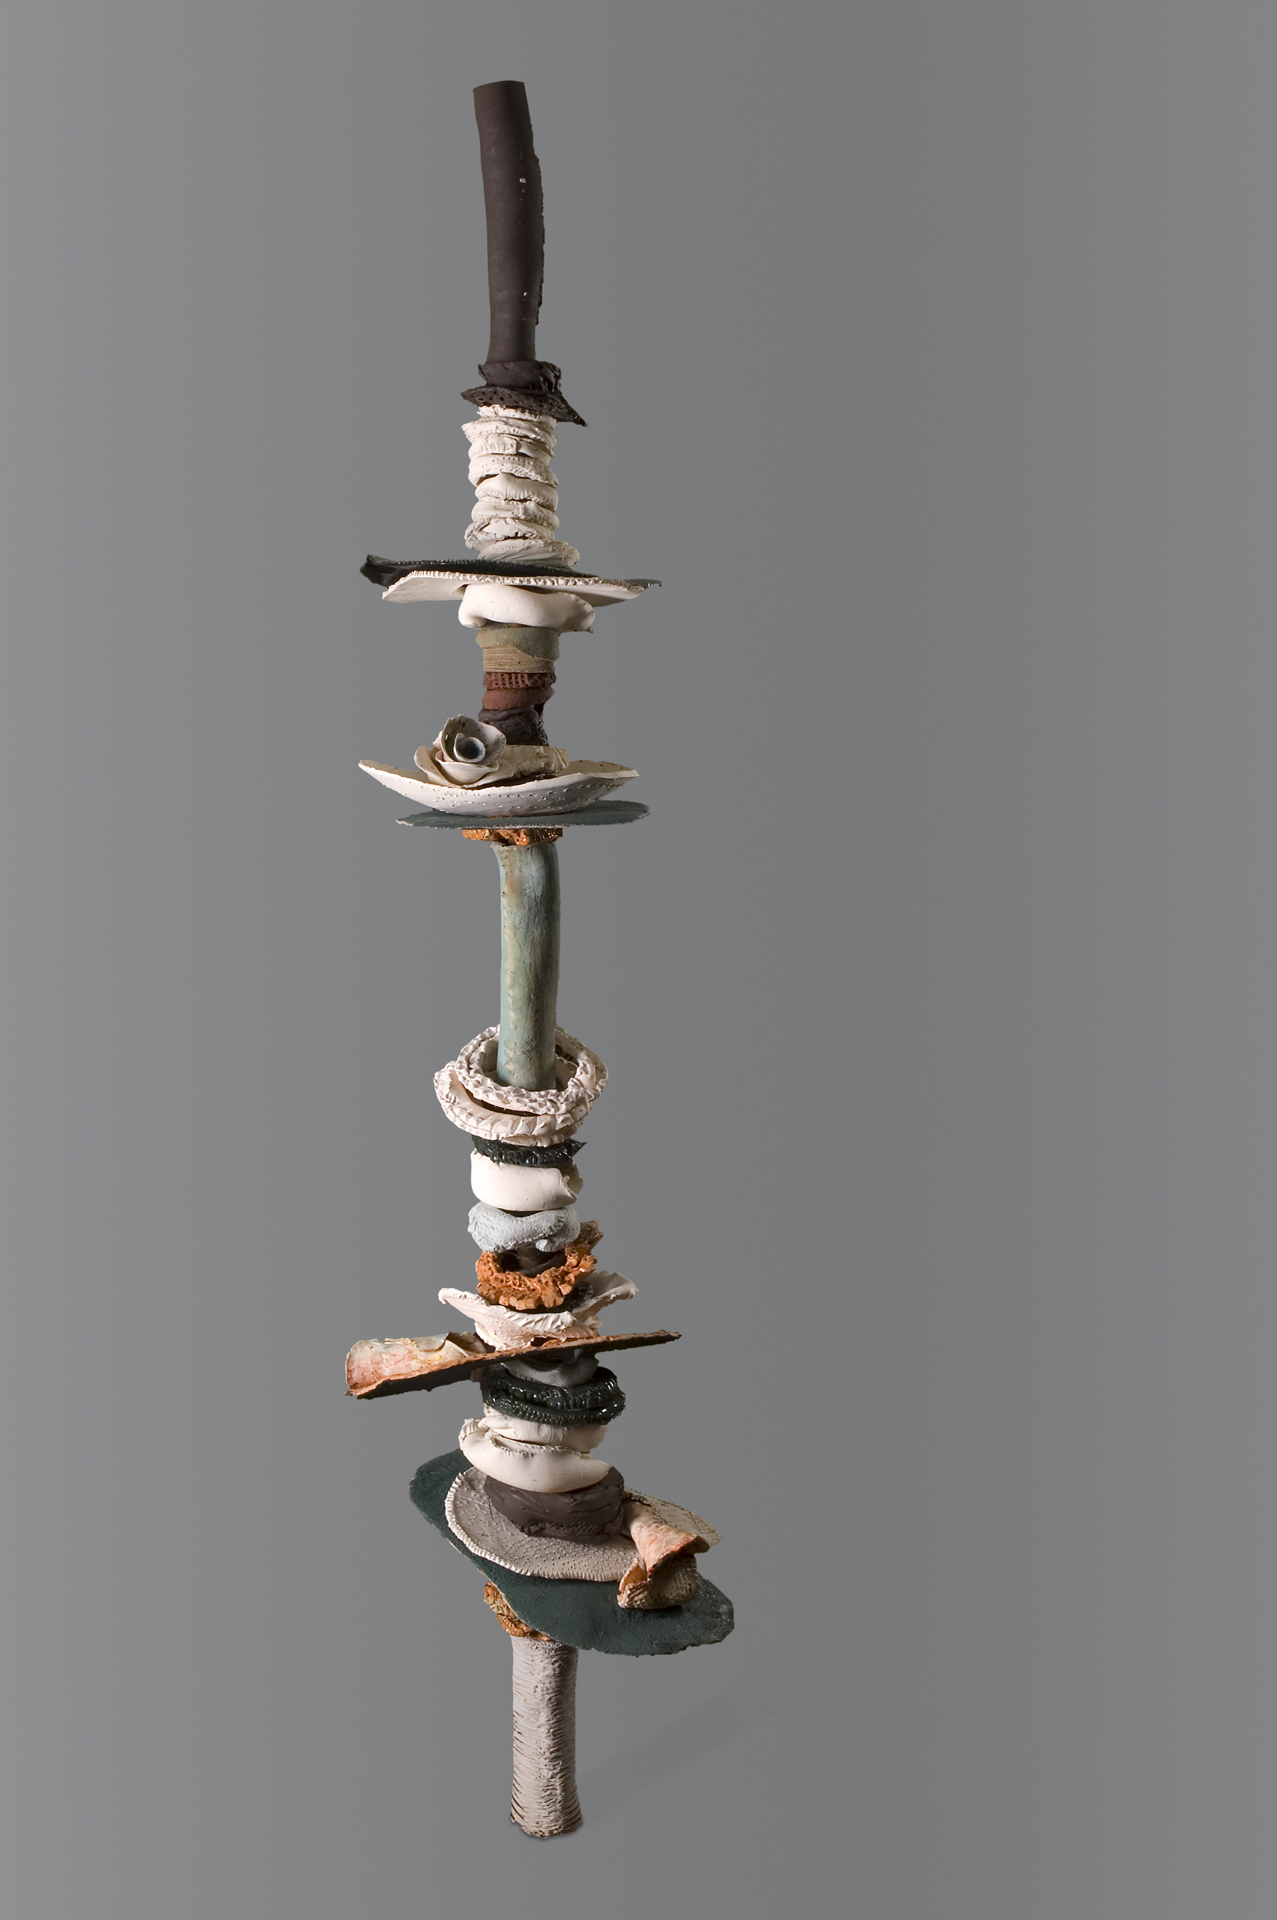 Ringed Tower, Ceramic Assemblage on Steel Armature, 96 x 18 x 24 in., 2013